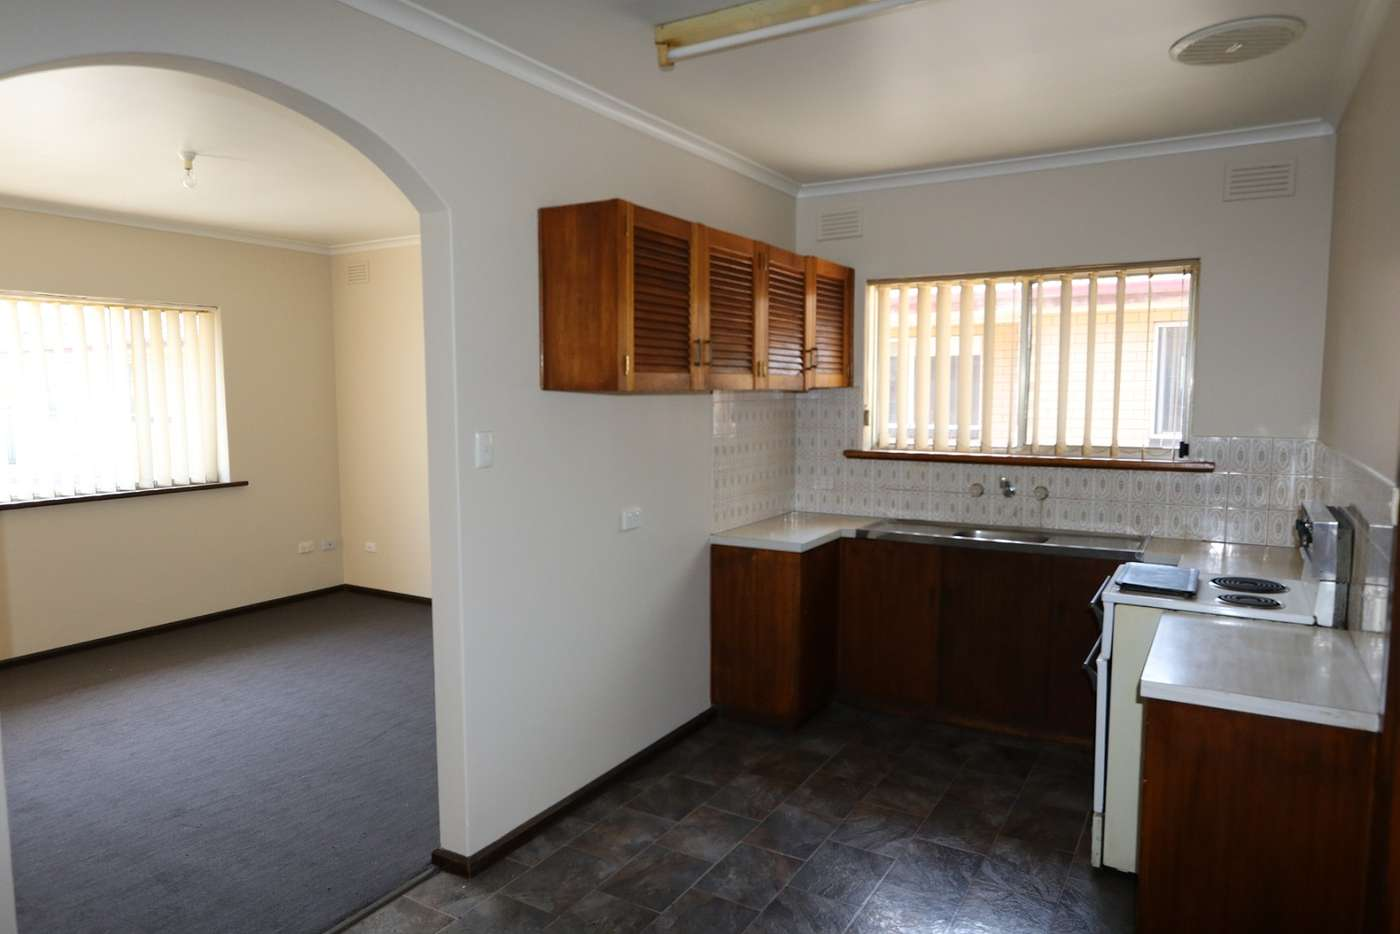 Sixth view of Homely flat listing, 7/12 Shepherd Street, Mount Gambier SA 5290